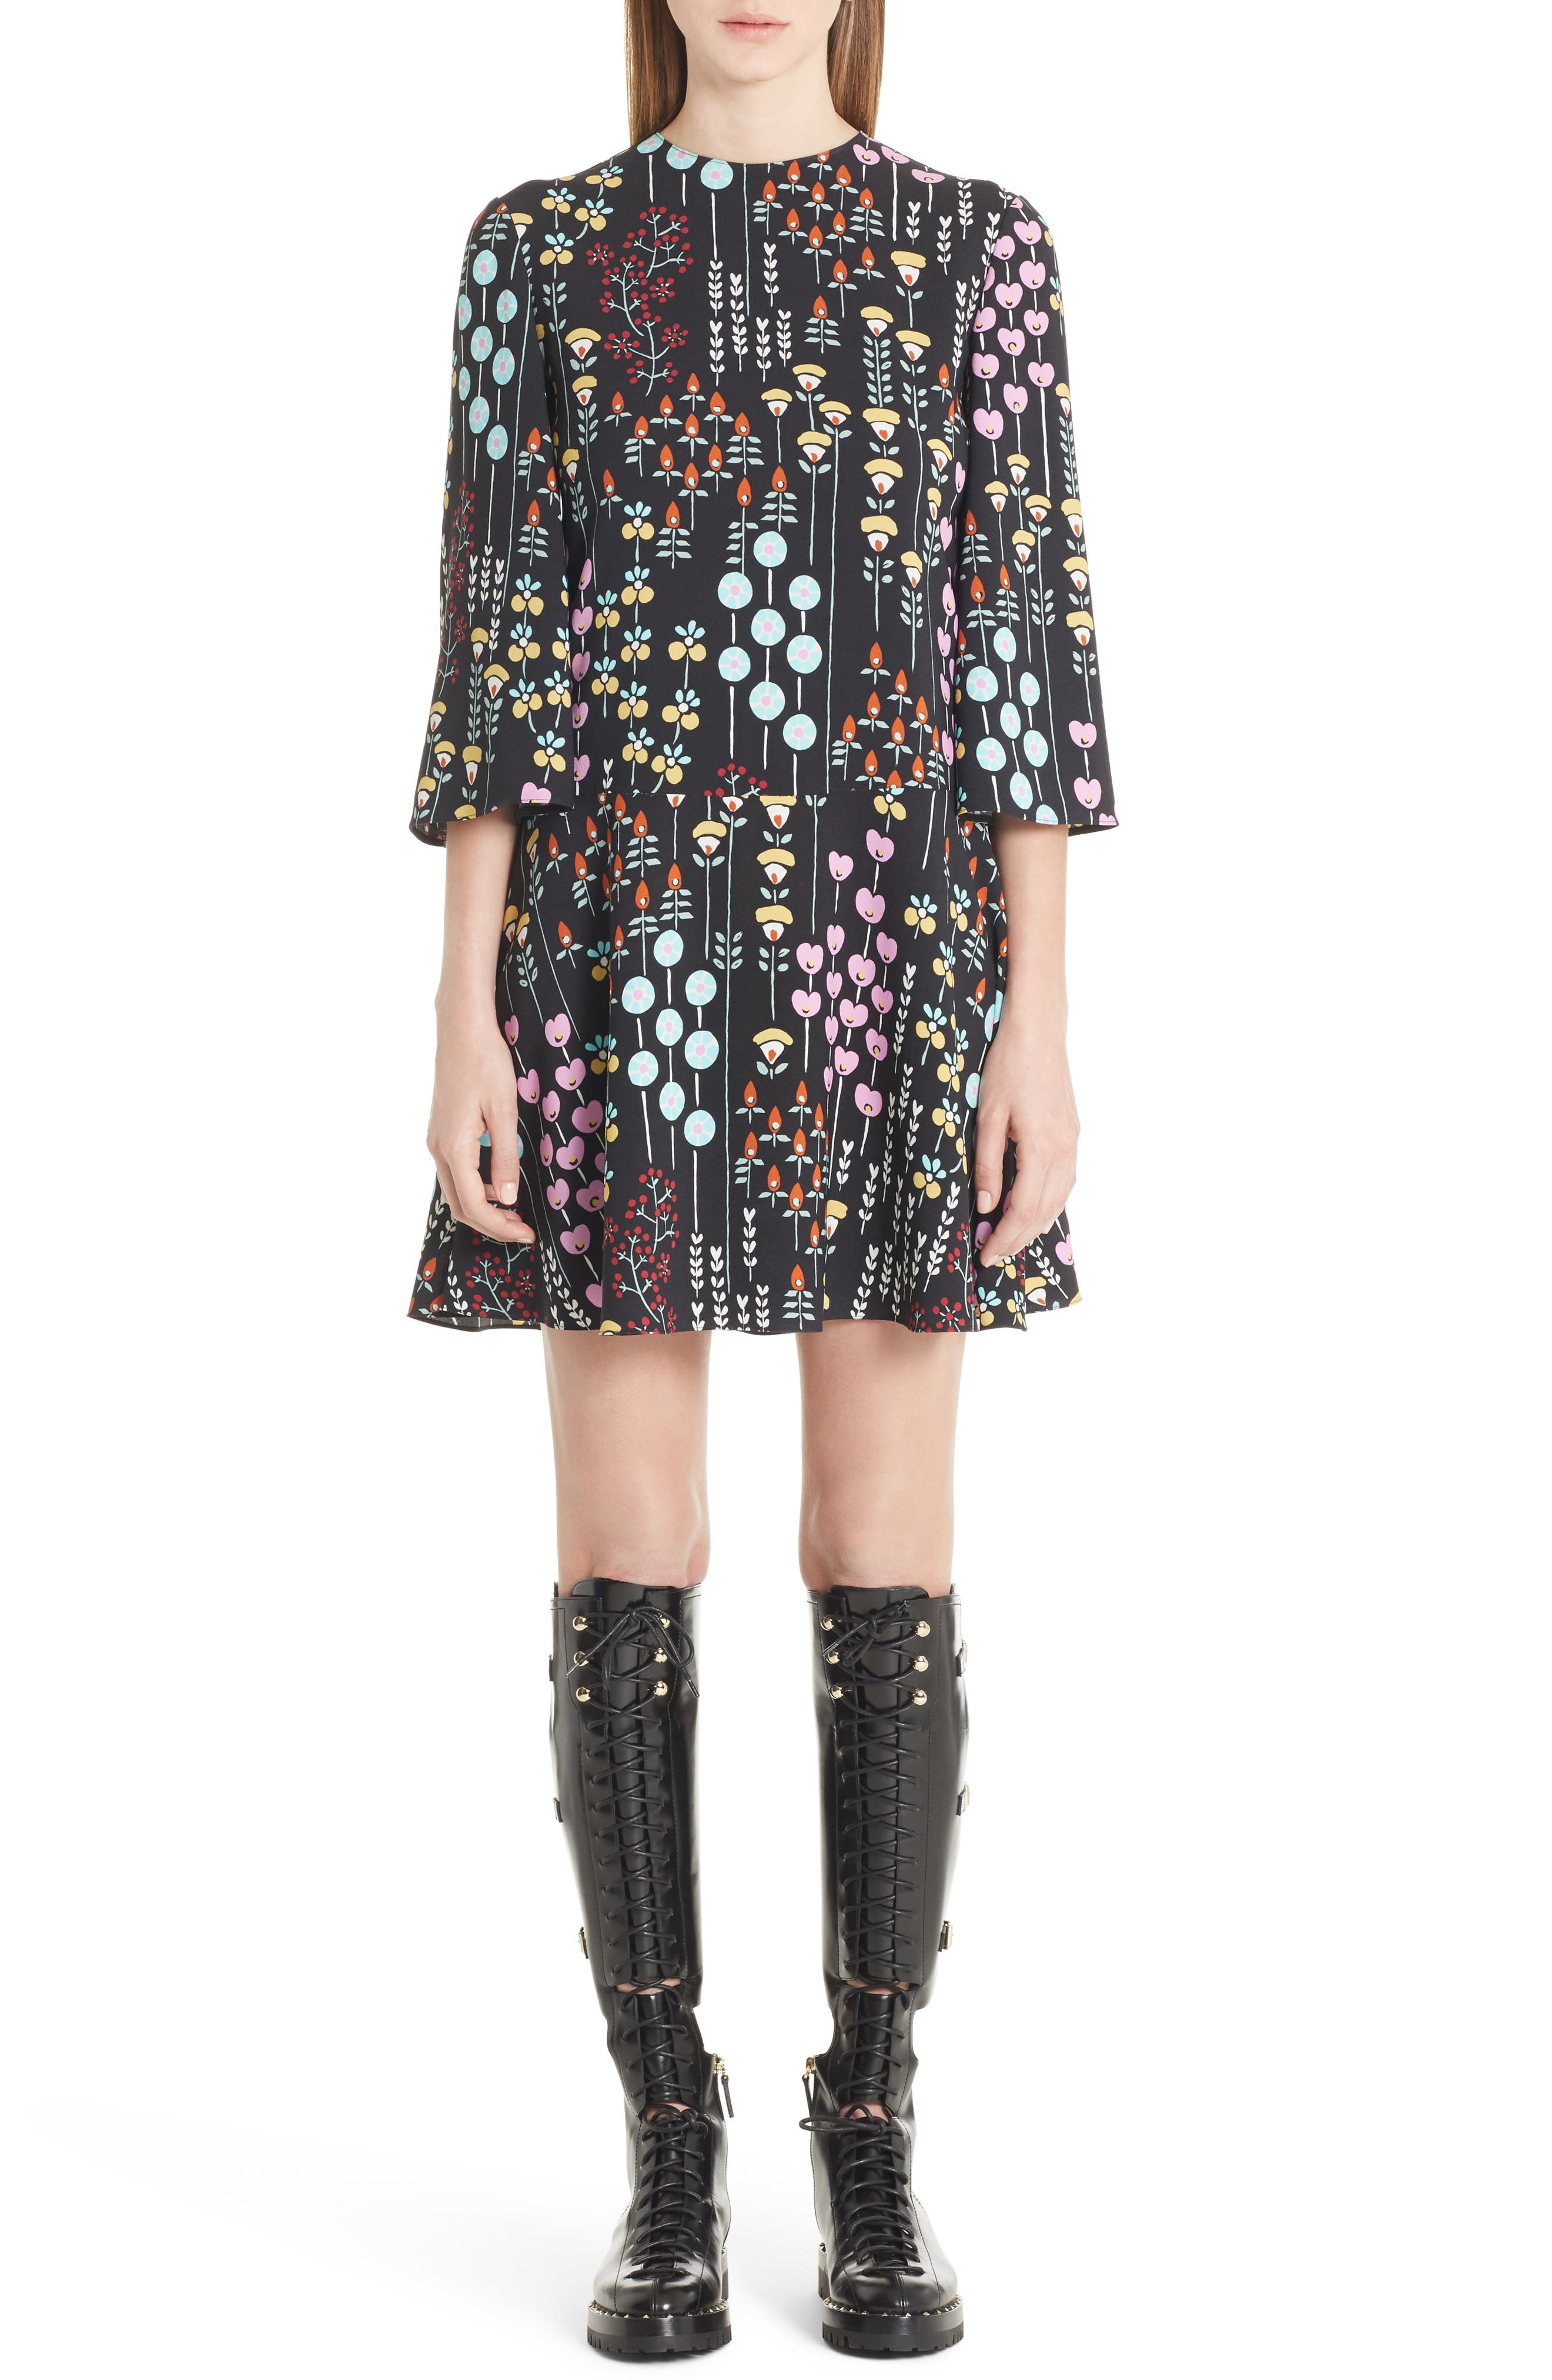 Valentino Floral Stem Print Dress